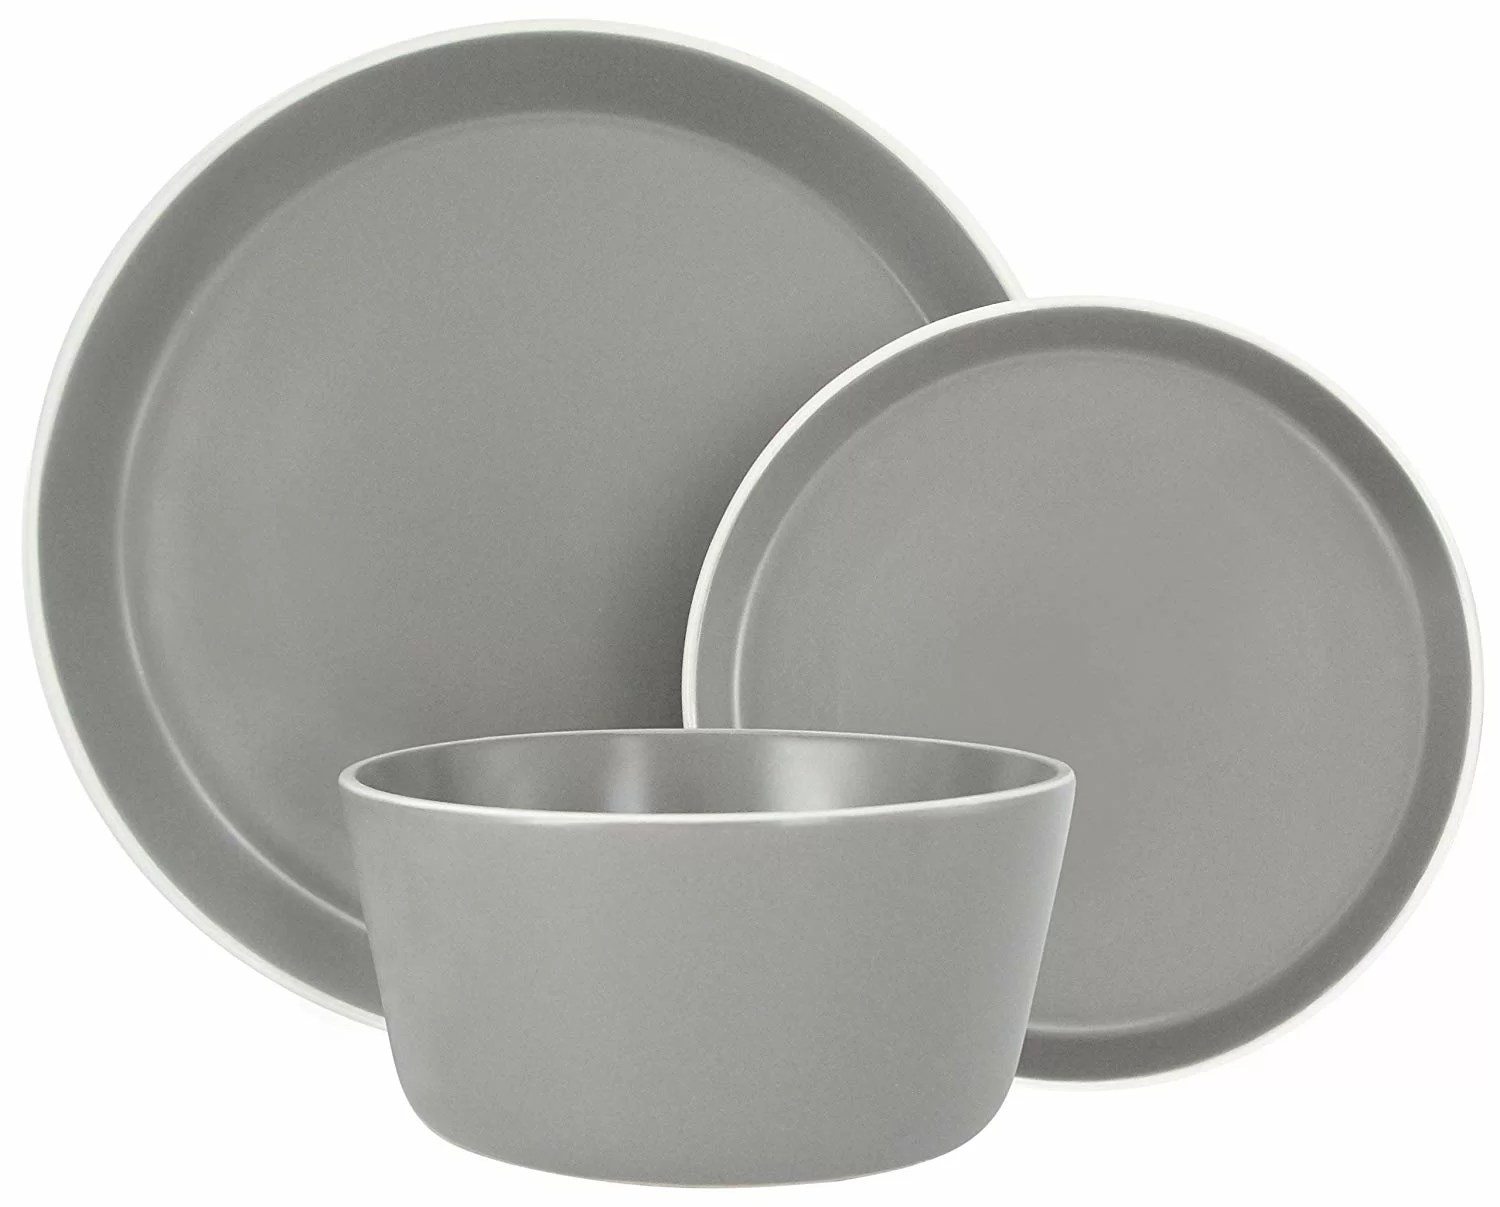 Microwave Plate Melange Stoneware 18 Piece Dinnerware Set Moderno Grey Service For 6 Microwave Dishwasher Oven Safe Dinner Plate Salad Plate Soup Bowl 6